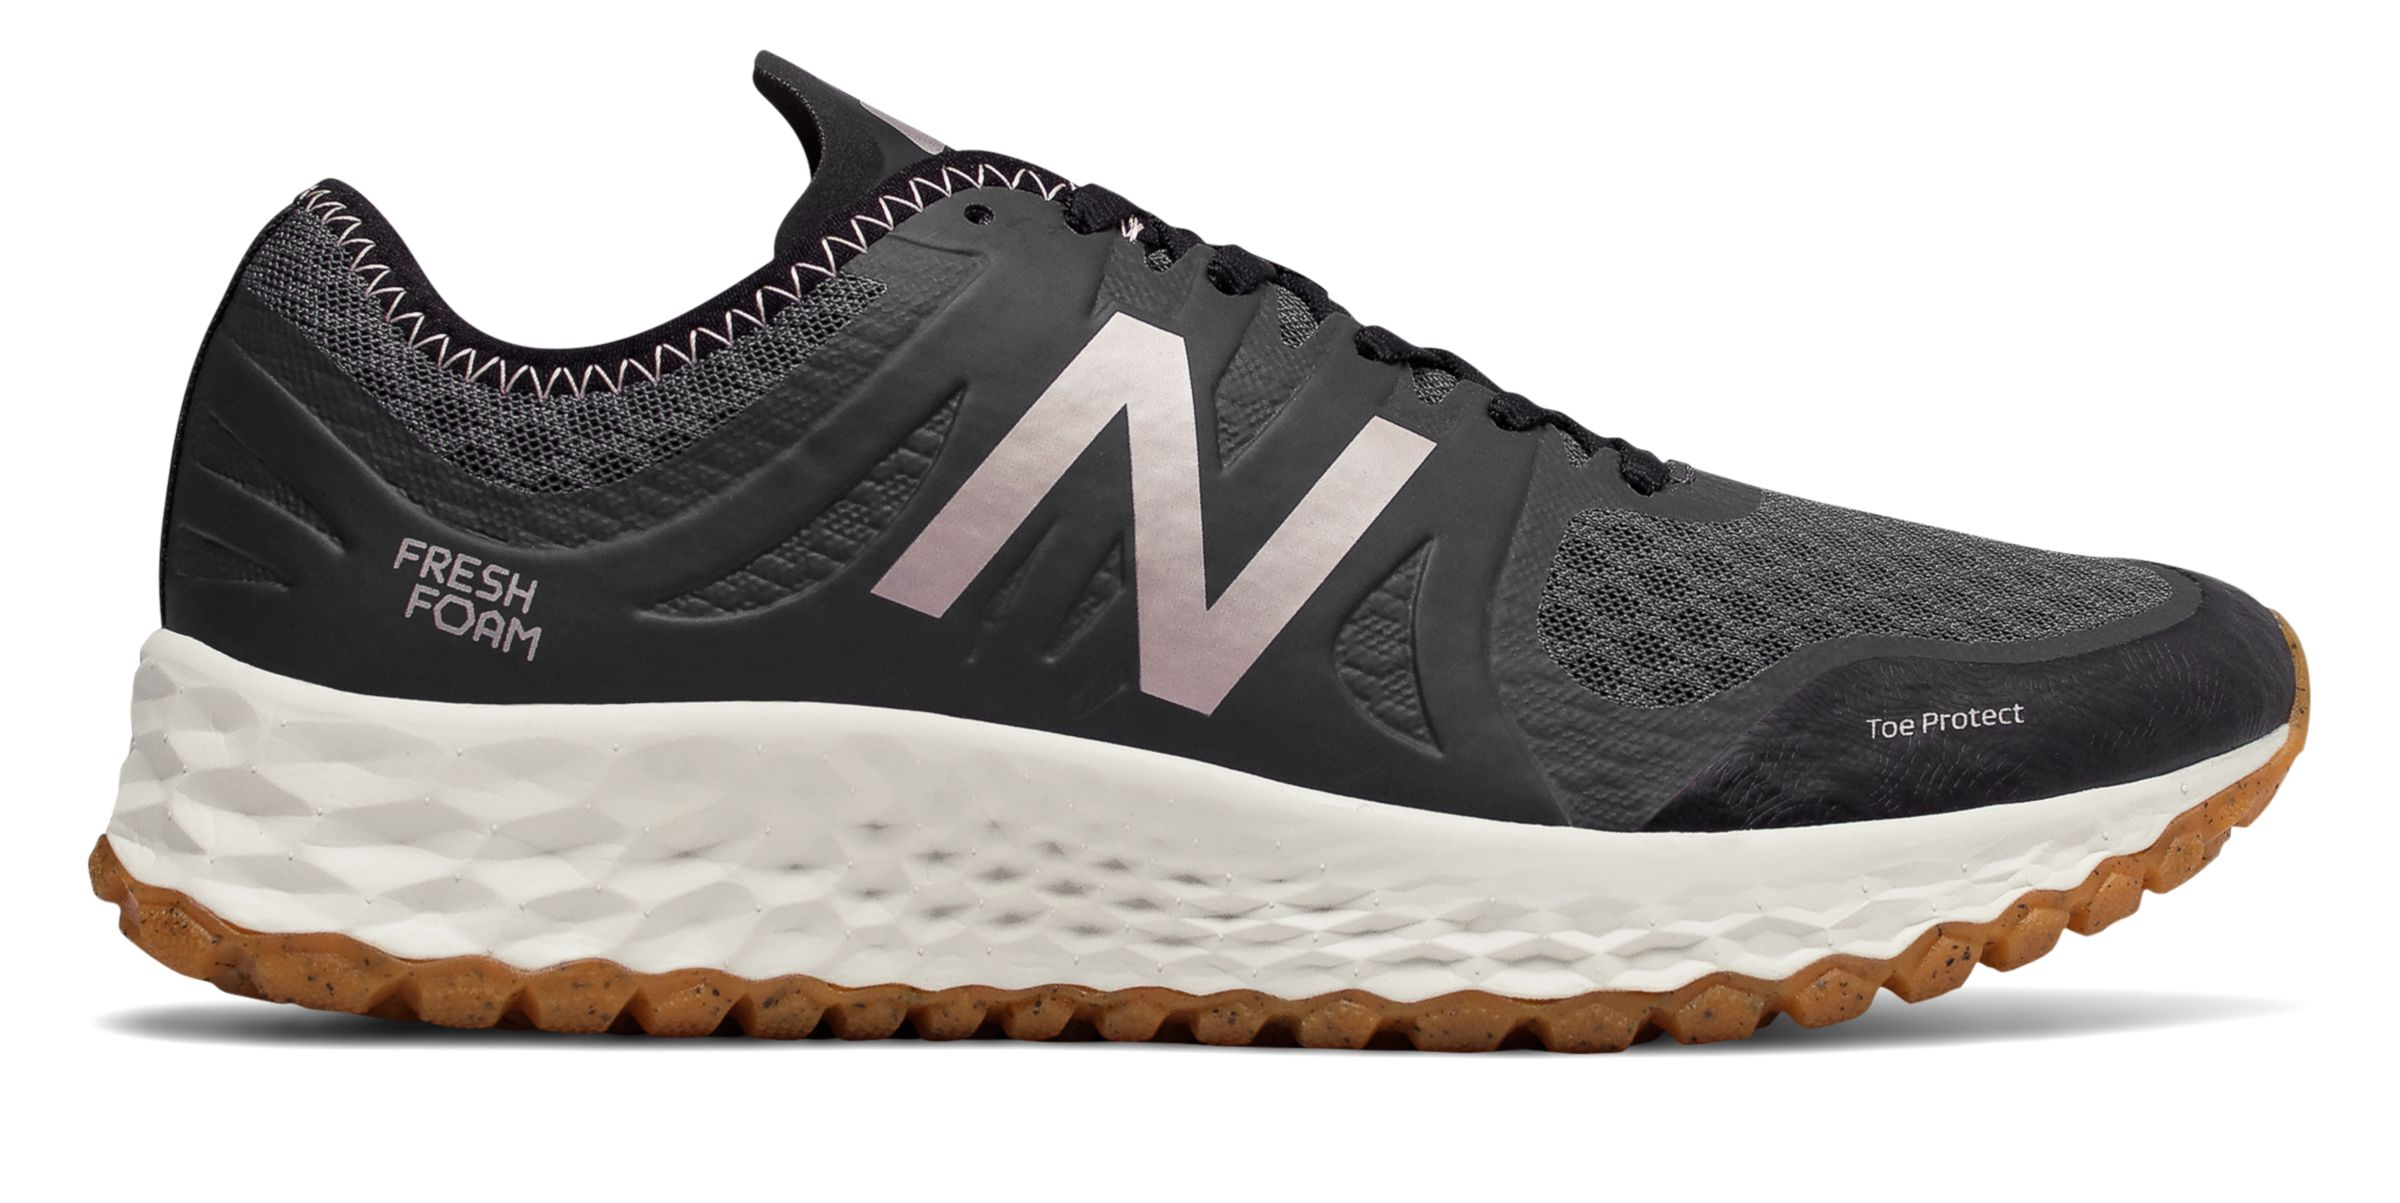 40341e70cb1a0 New Balance Female Women s Fresh Foam Kaymin Trail Running Shoes ...